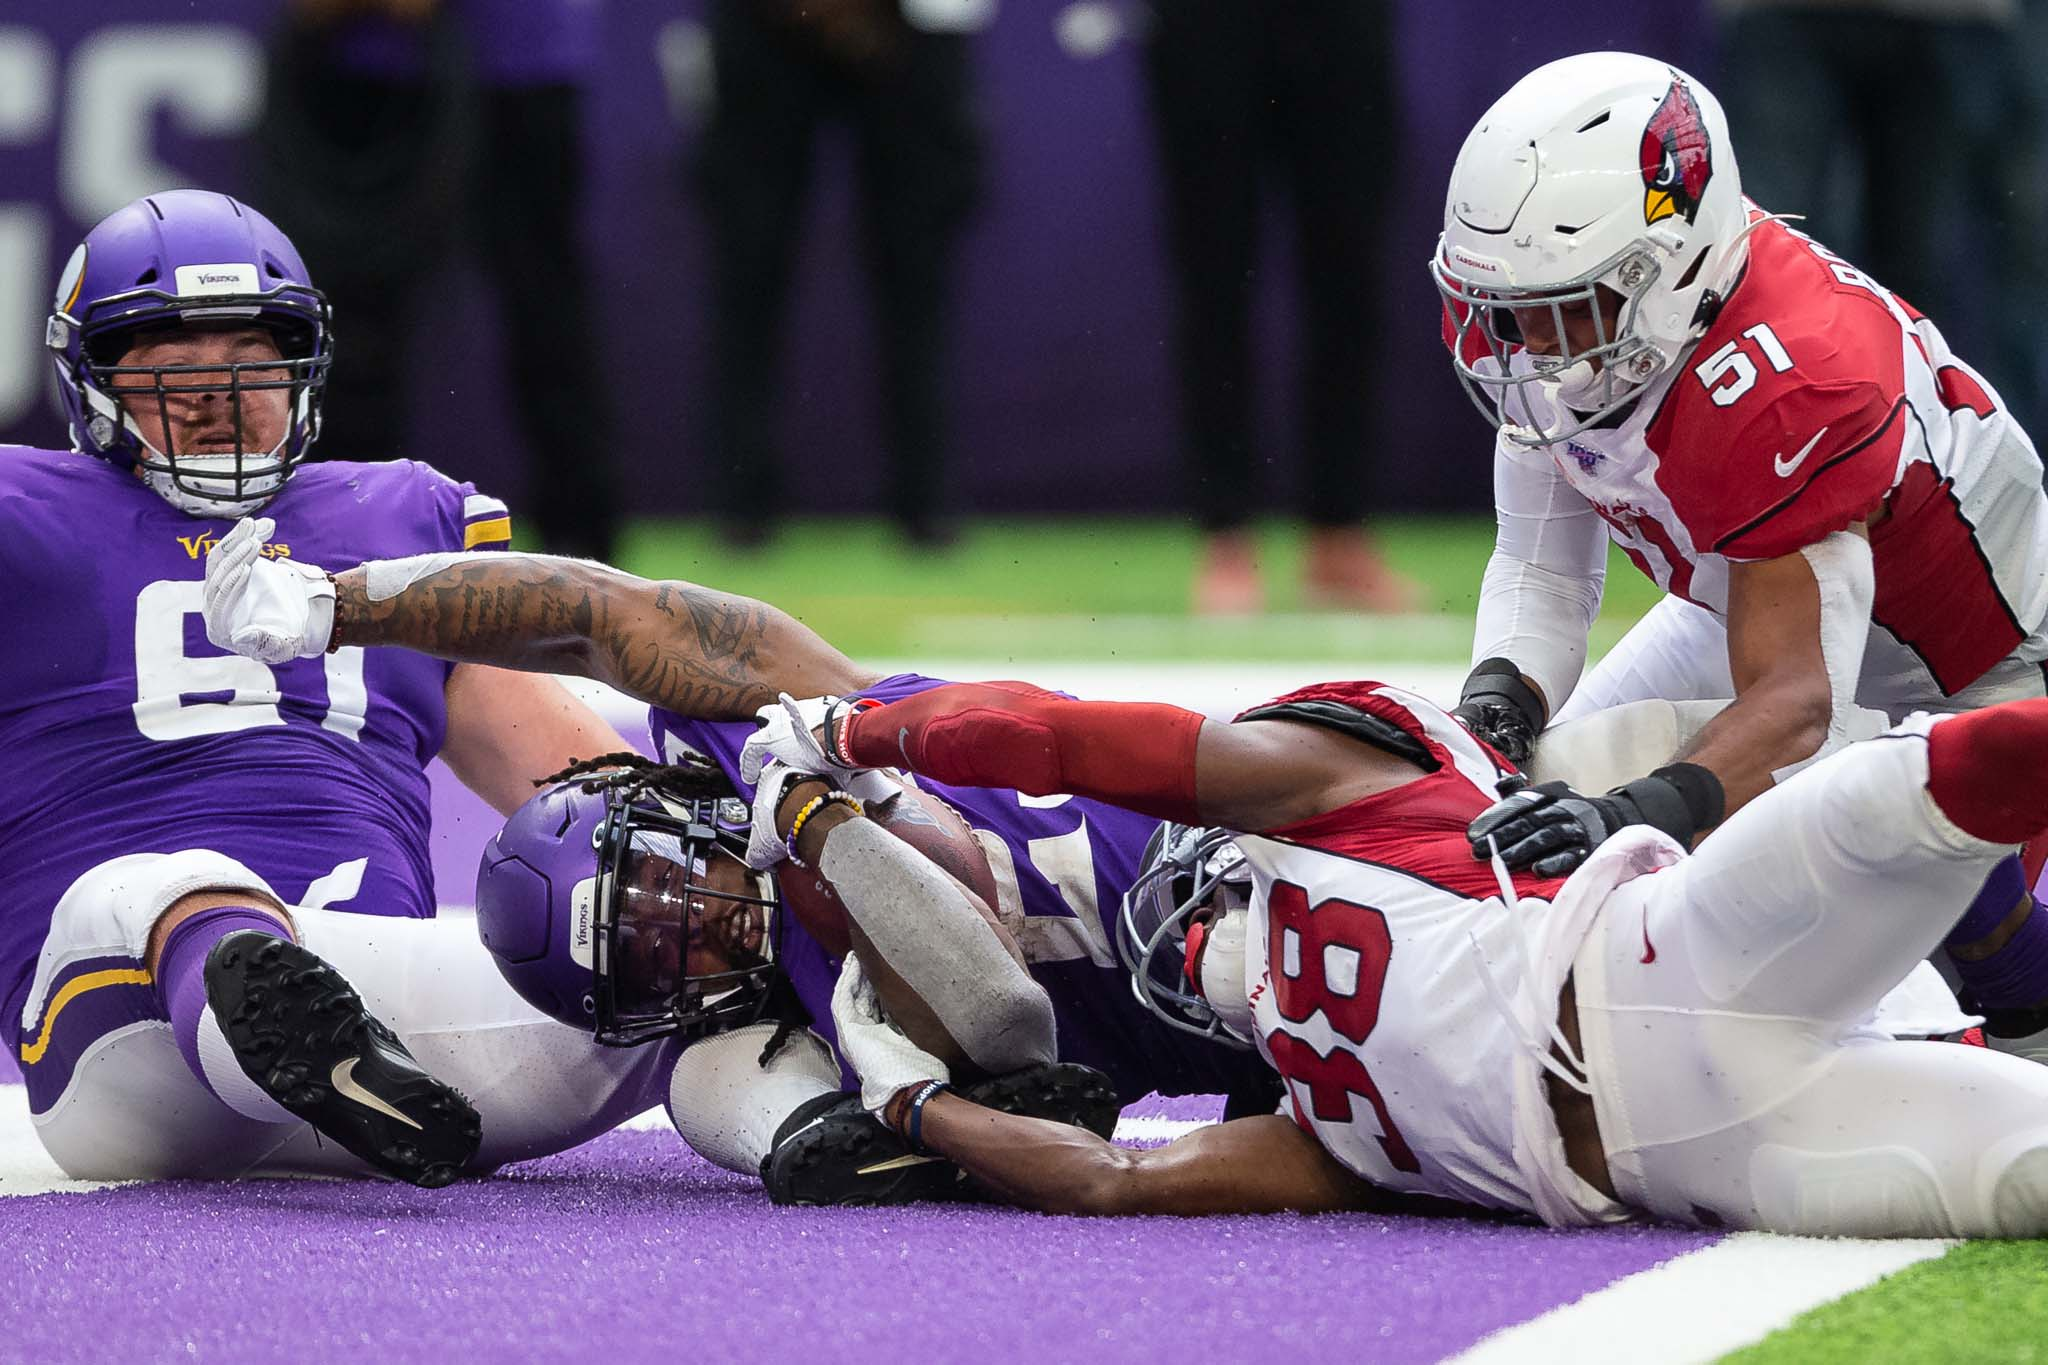 Aug 24, 2019; Minneapolis, MN, USA; Minnesota Vikings running back Mike Boone (23) scores a touchdown during the third quarter against the Arizona Cardinals at U.S. Bank Stadium. Mandatory Credit: Harrison Barden-USA TODAY Sports